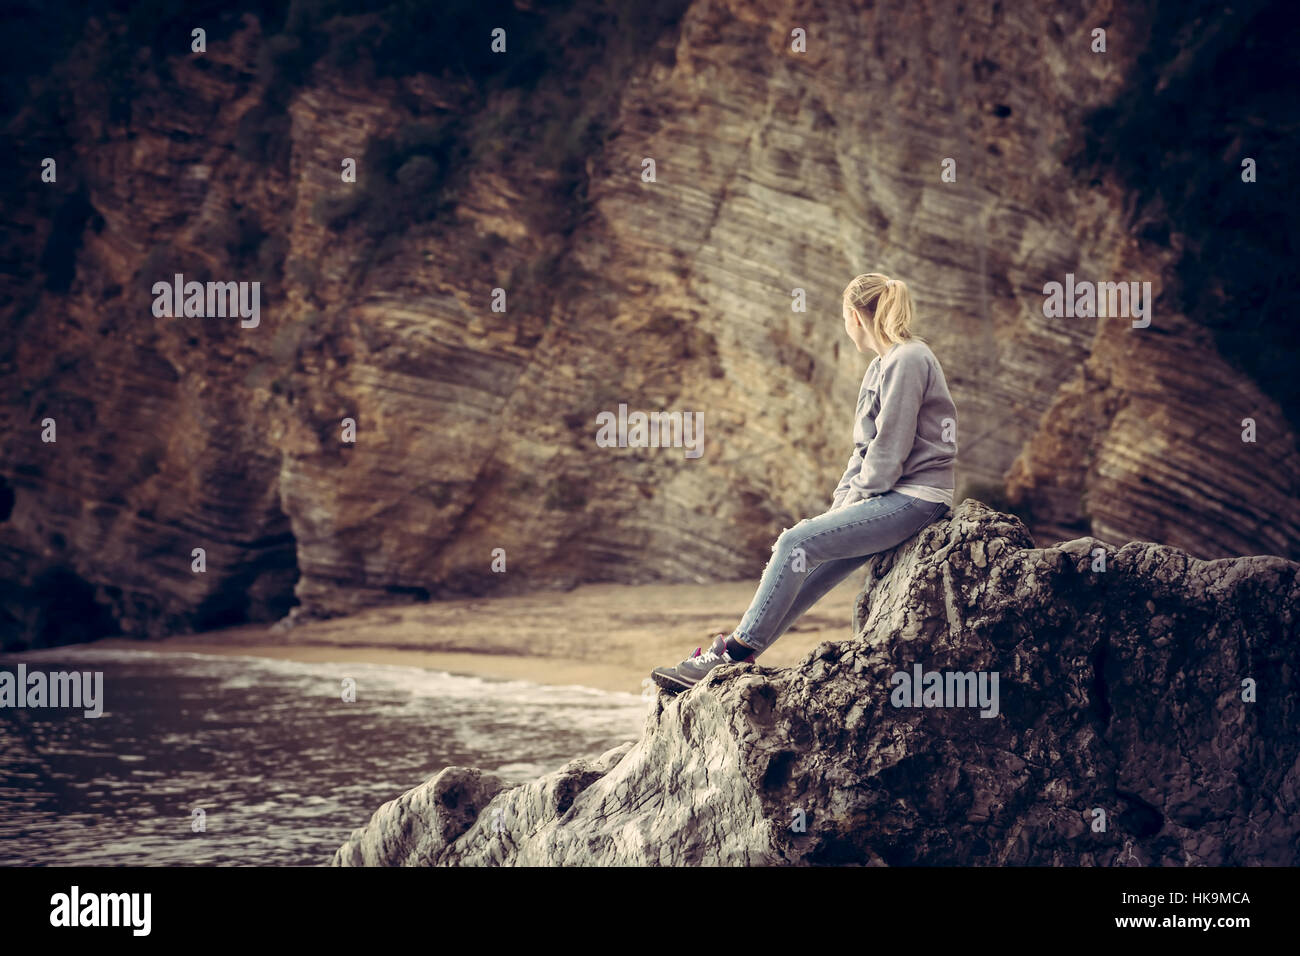 Pensive lonely young woman traveler relaxing on a big cliff stone on the beach looking at wild mountain scenery - Stock Image